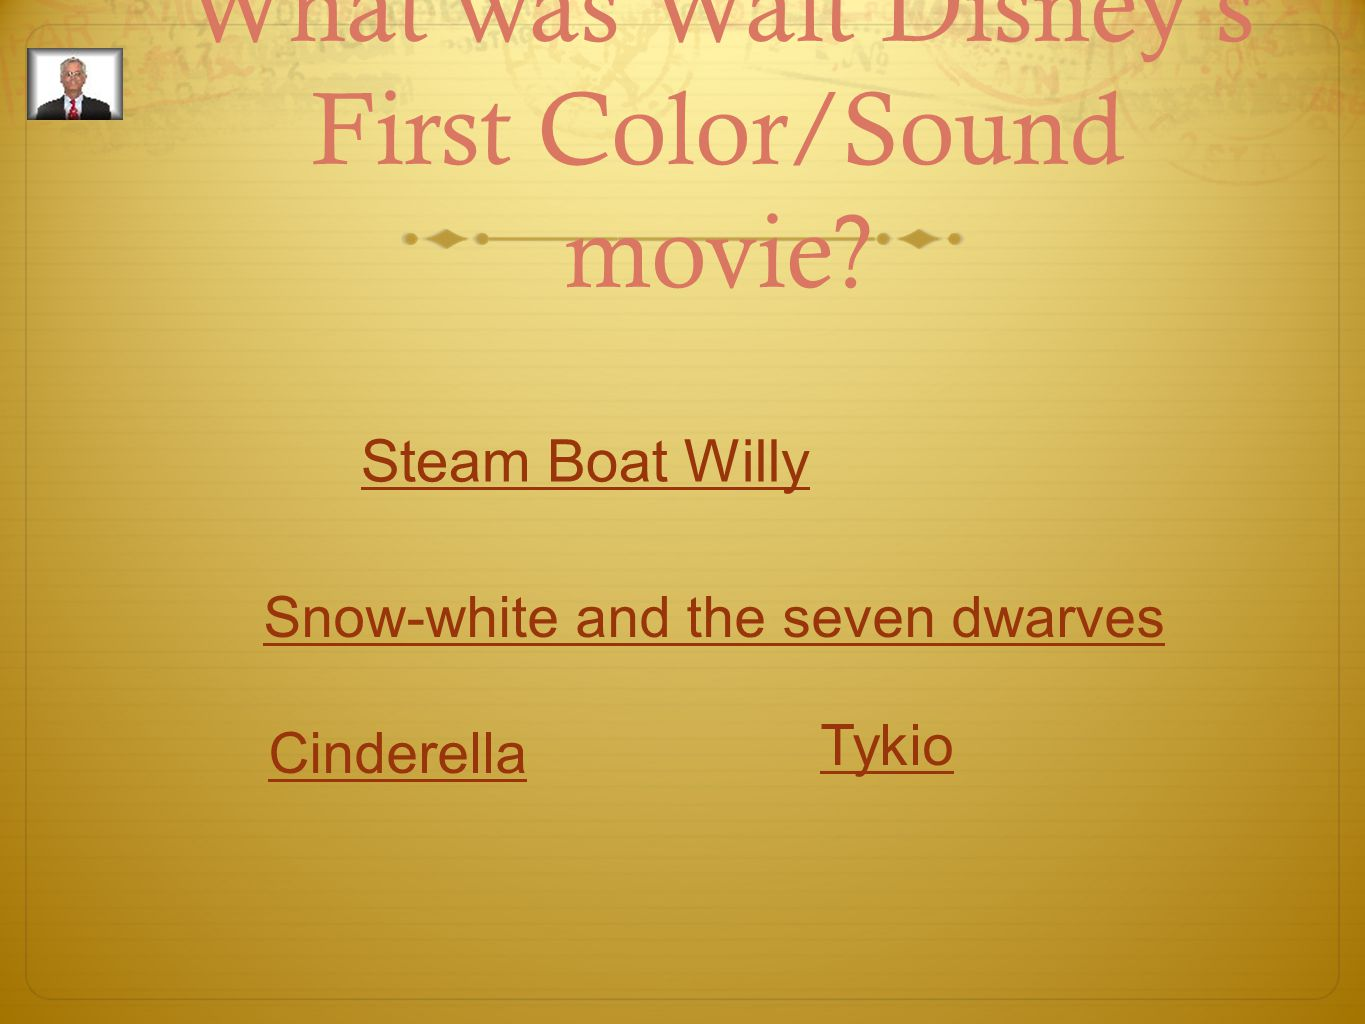 What was Walt Disney's First Color/Sound movie? Steam Boat Willy Snow-white and the seven dwarves Cinderella Tykio